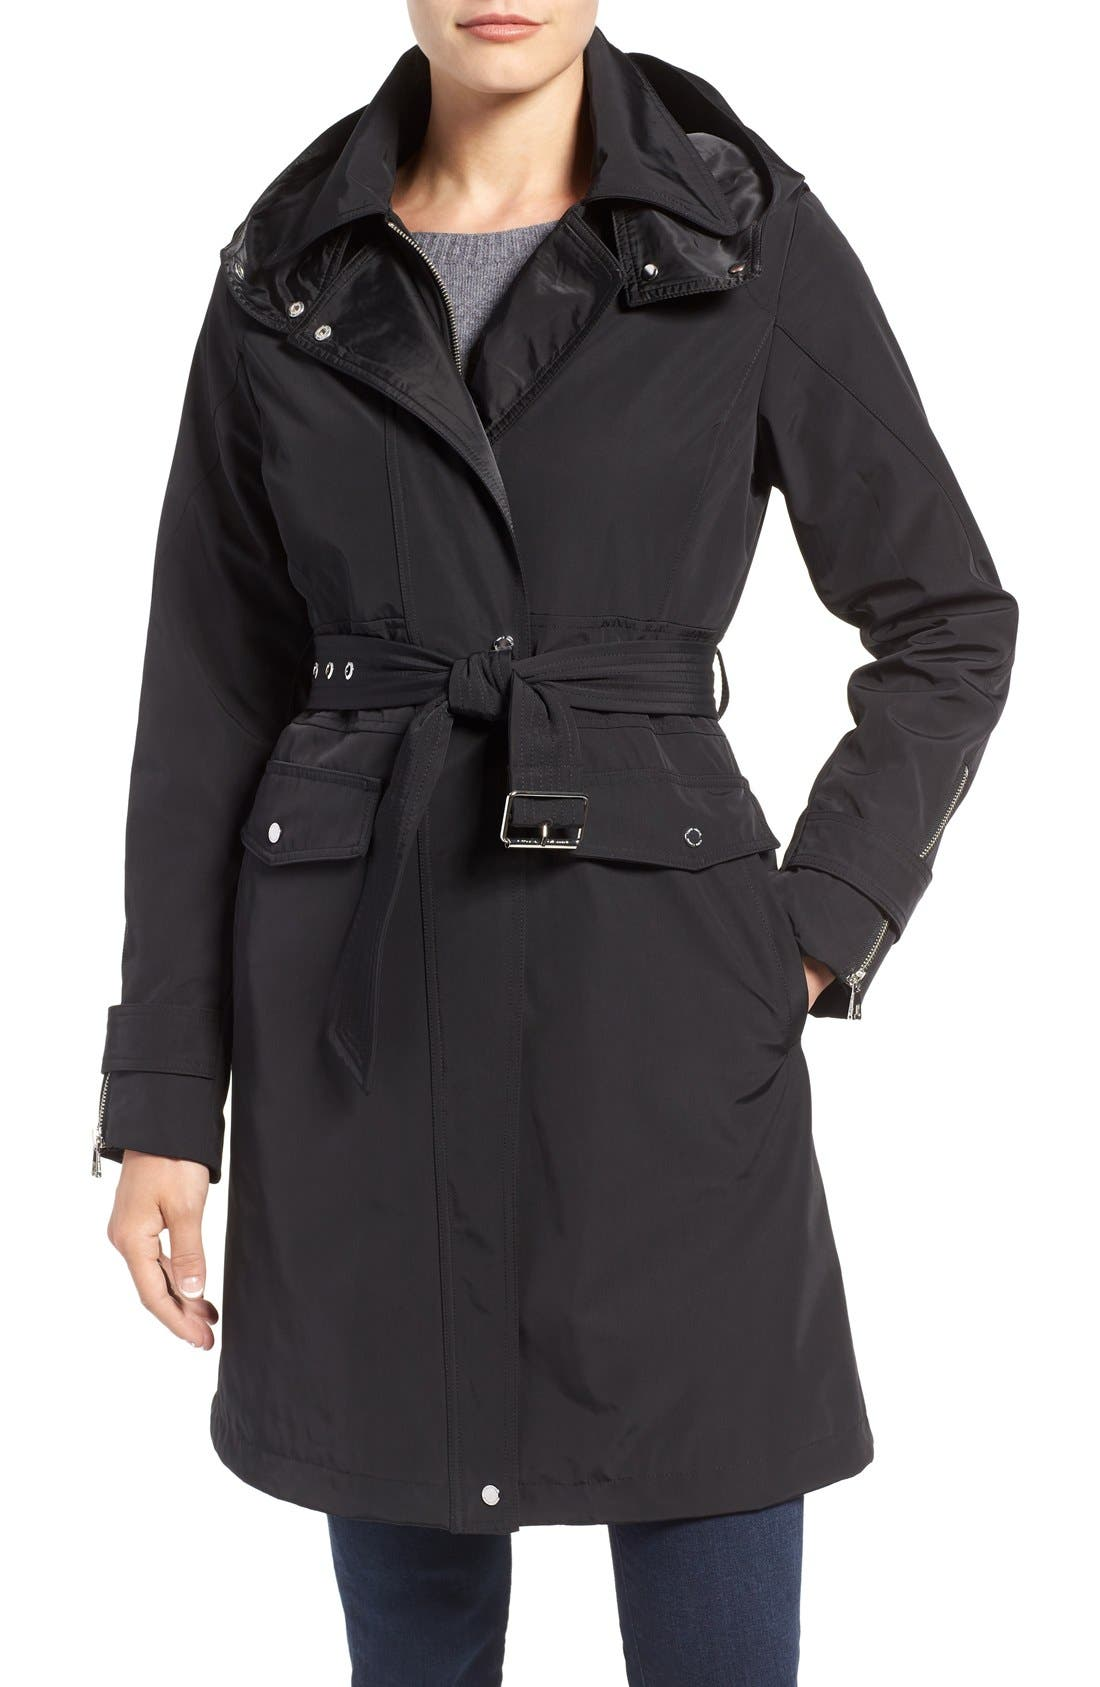 Hooded Trench Coat,                             Main thumbnail 1, color,                             001